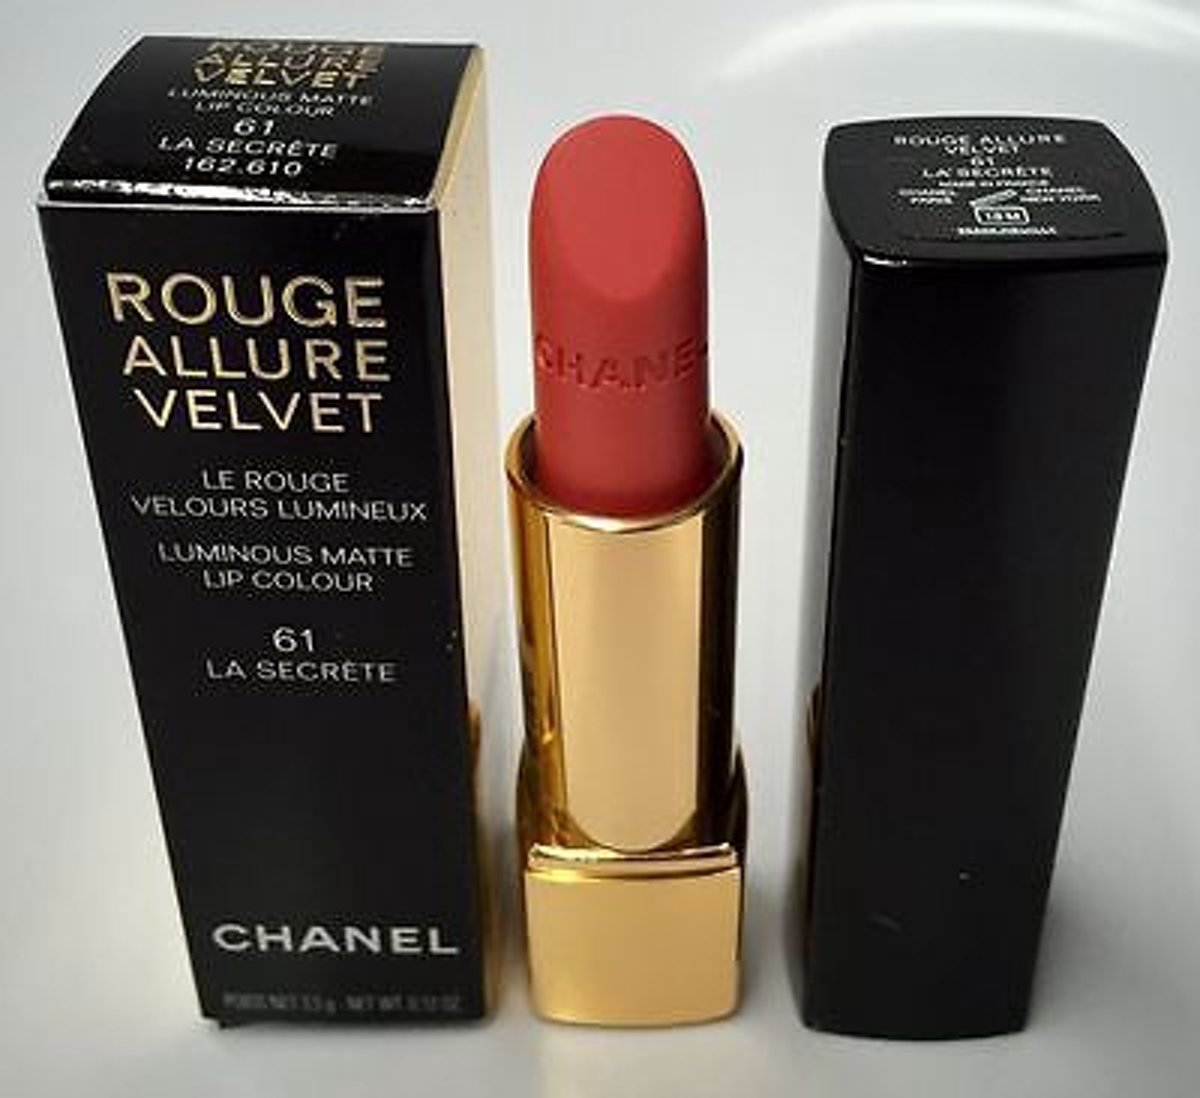 Chanel Rouge Allure Velvet Lumin. Matte Lip Colour 3.5 gr